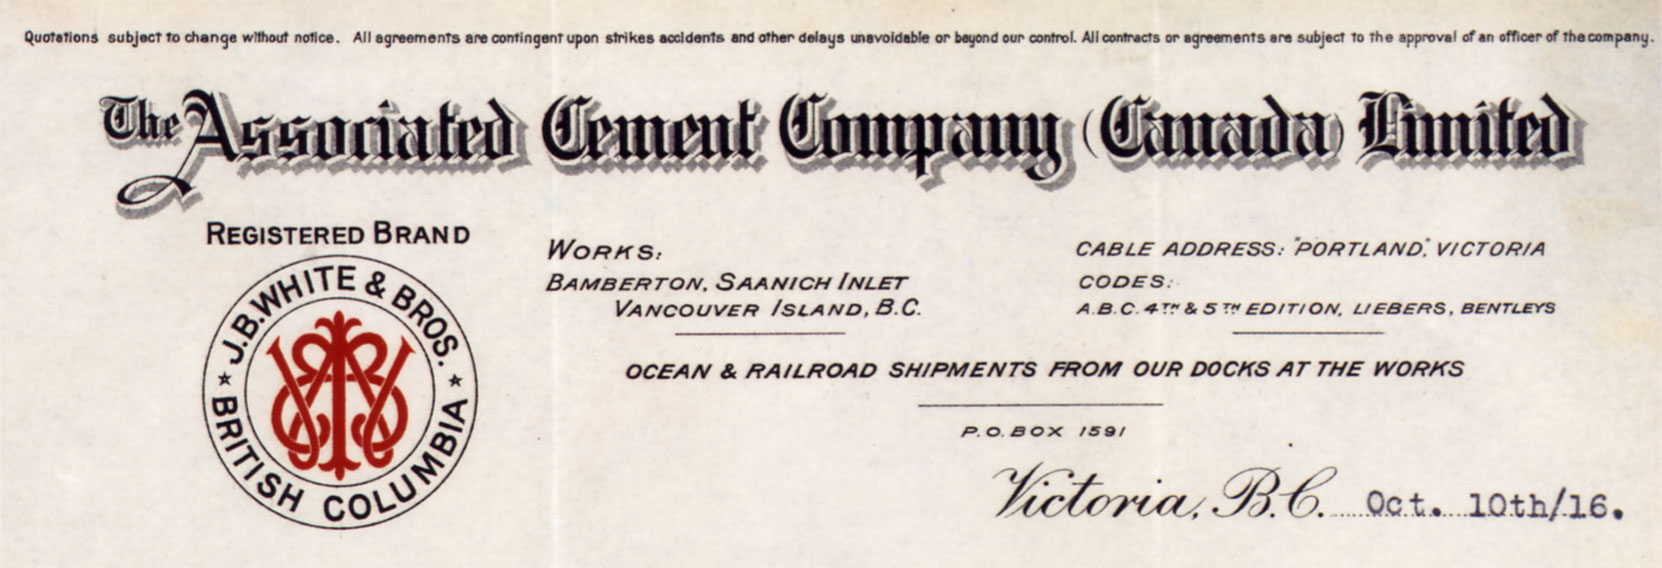 Associated Cement Company (Canada) Limited, letterhead, 1916 (Author's collection)